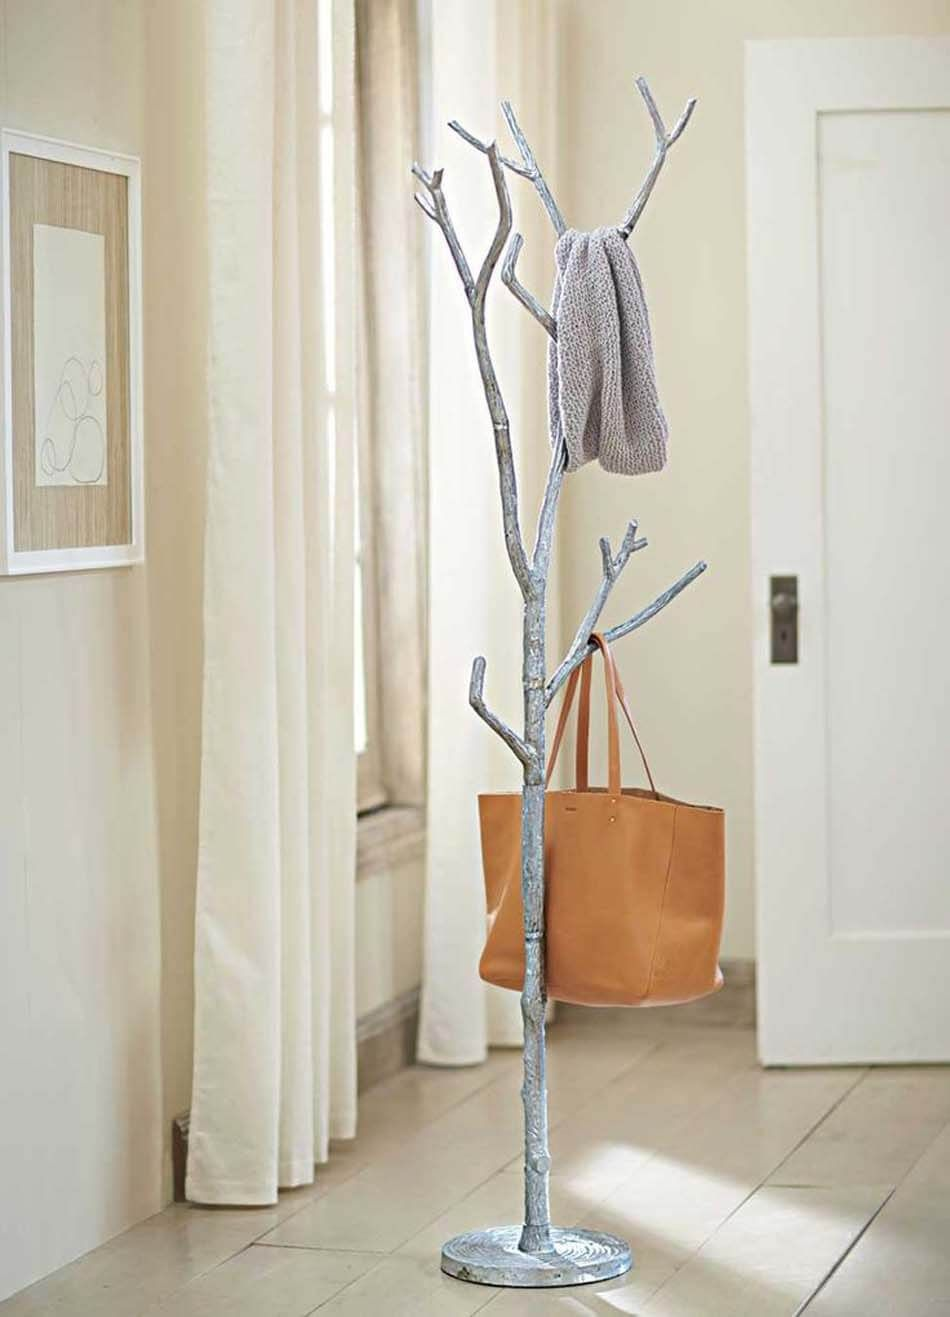 Modern Home Design With Tree Style Coat Rack Tree Coat Rack Coat Rack Coat Stands